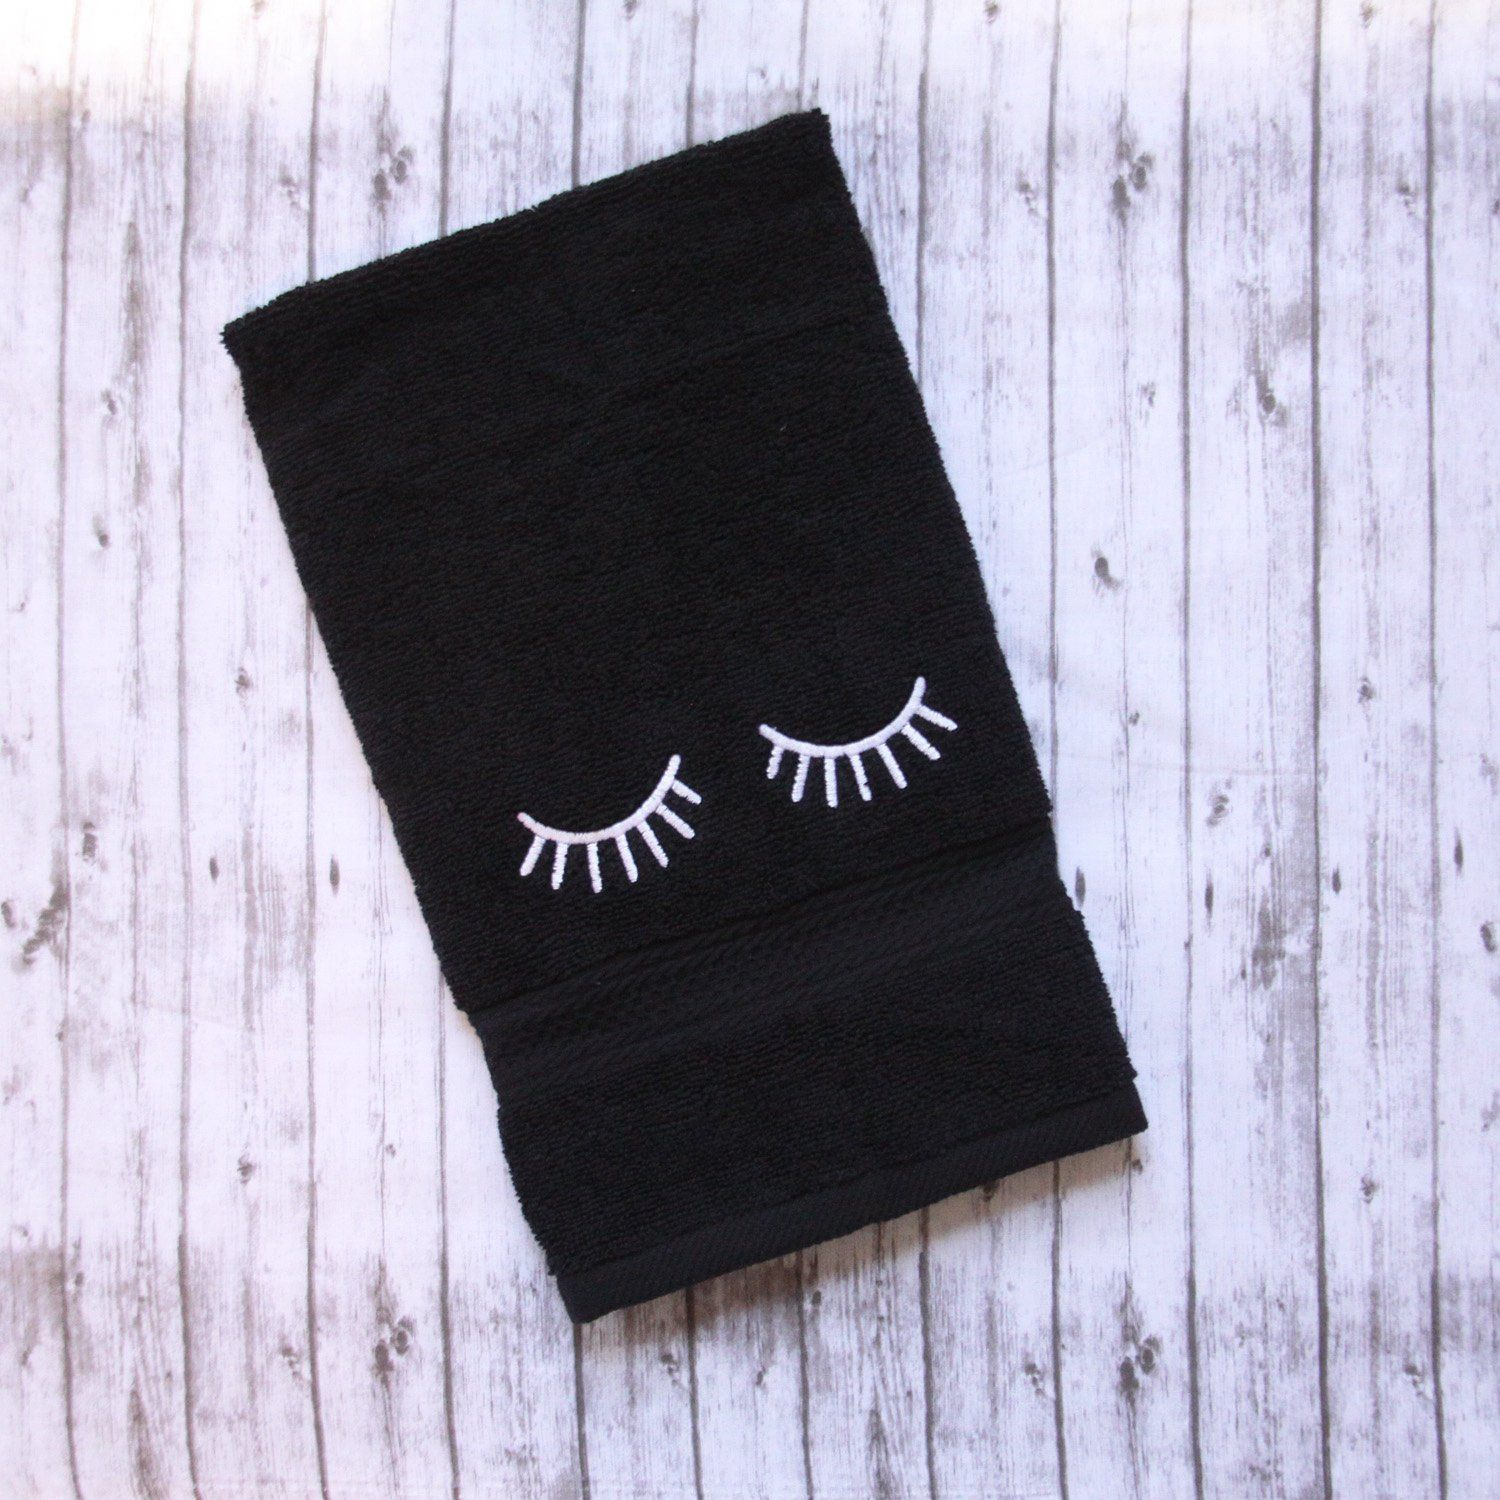 Embroidered eyelash makeup towel, black makeup towel